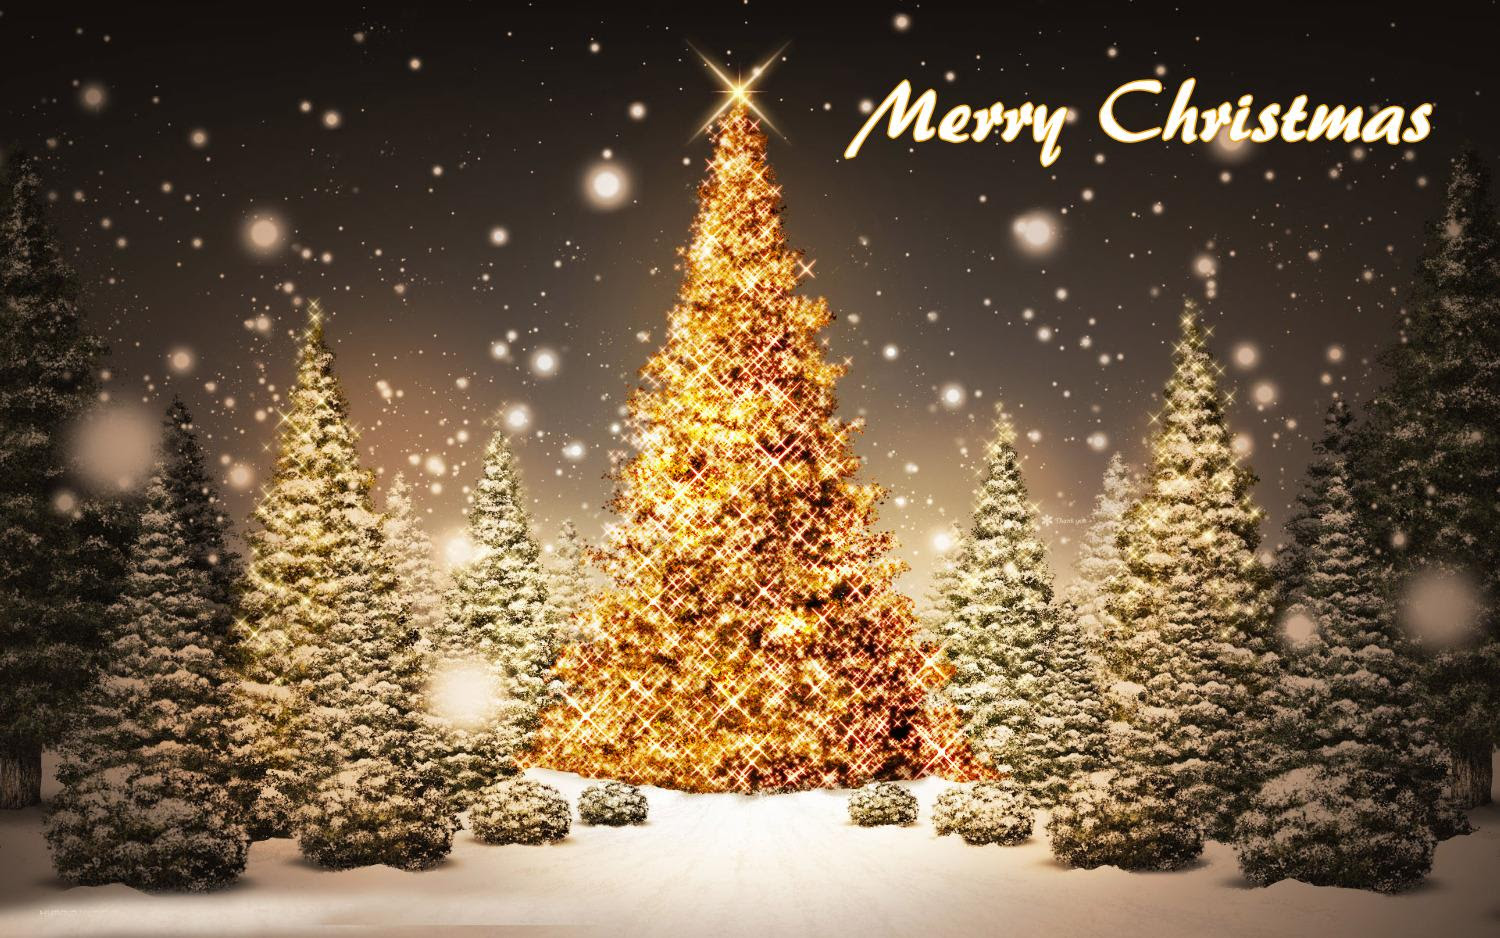 Inspirational Merry Christmas Tree Hd Images Top Colection For